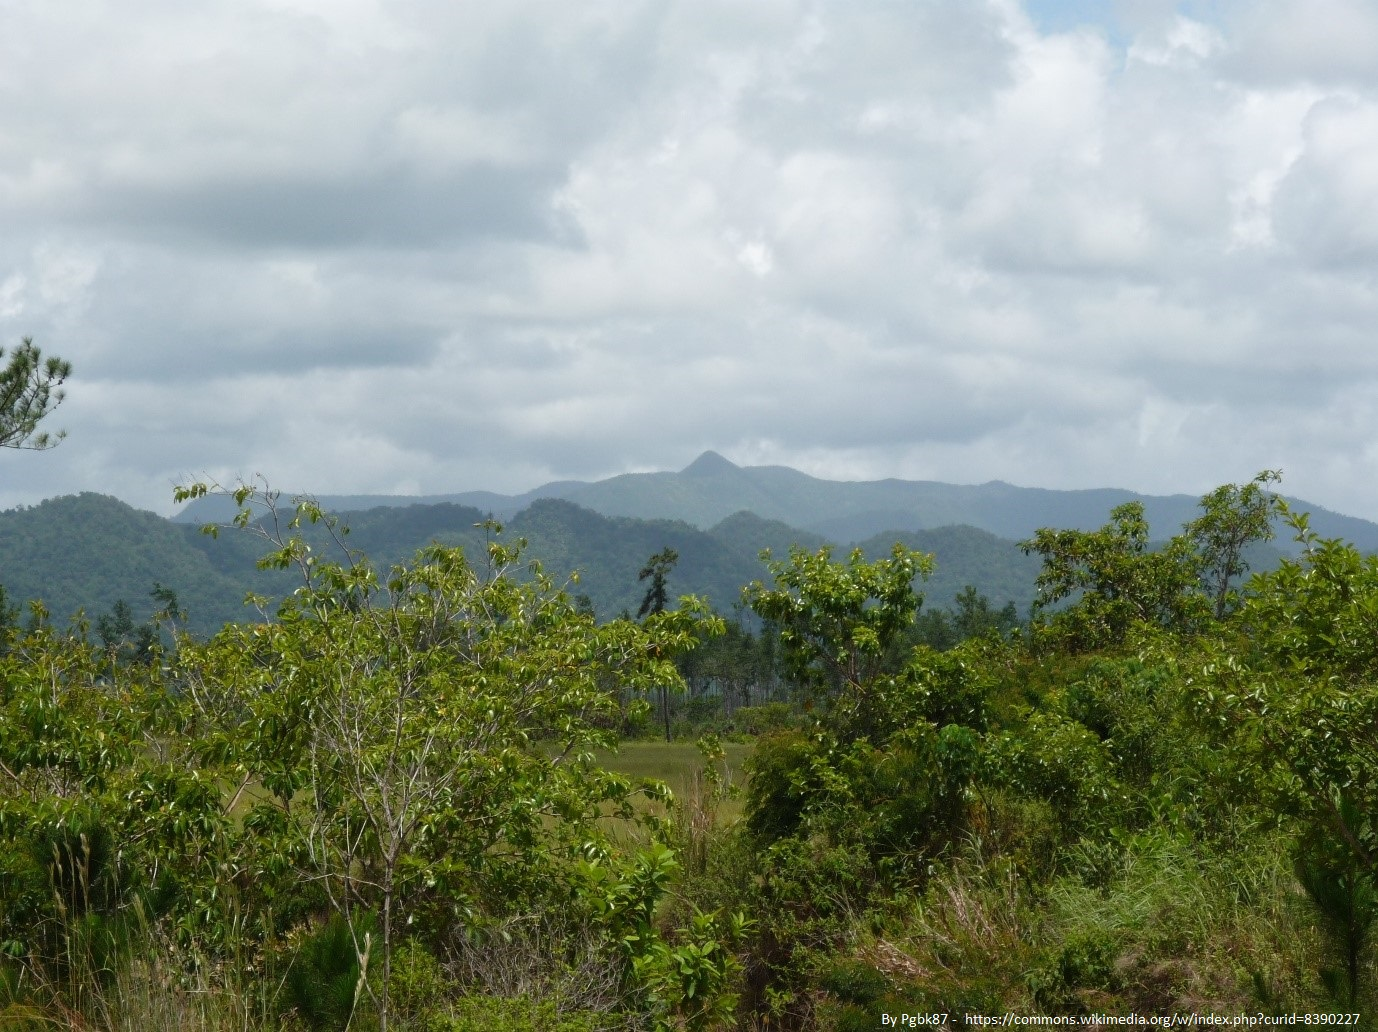 The Maya Mountains contain the majority of Belize's endemic plant species